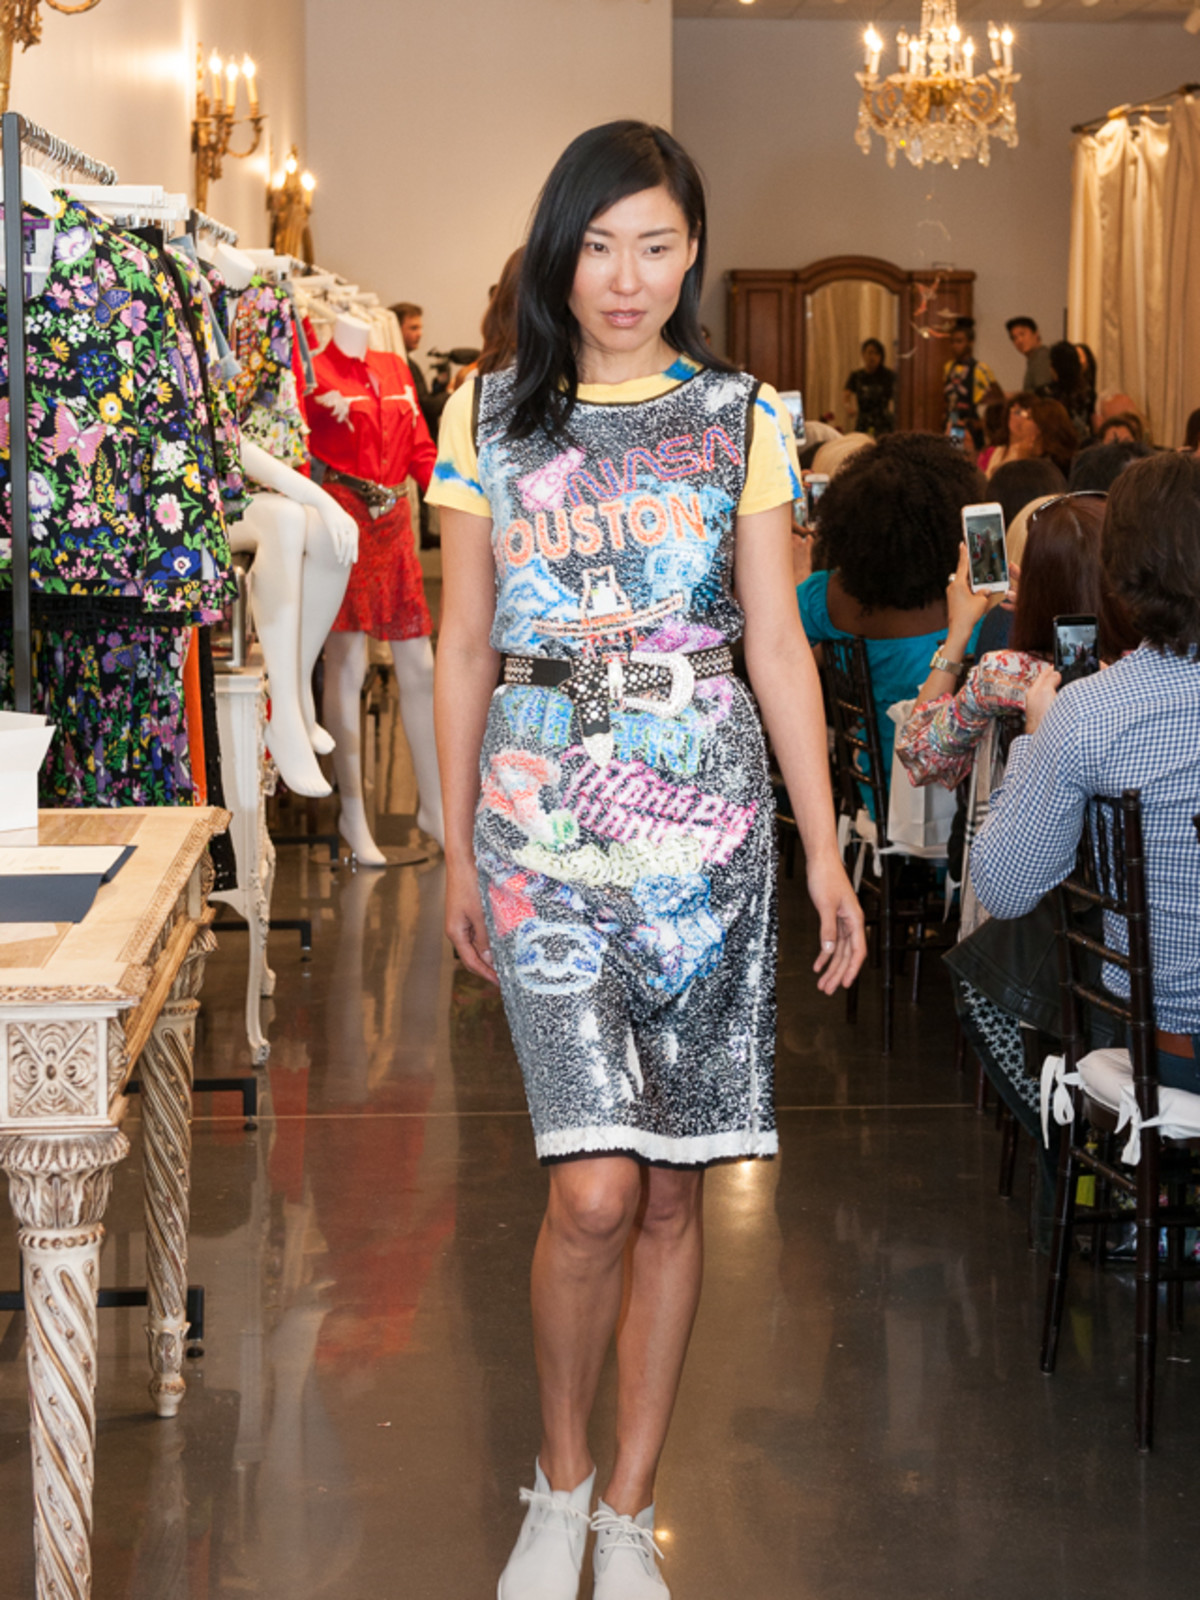 Vivienne Tam Houston collection dress